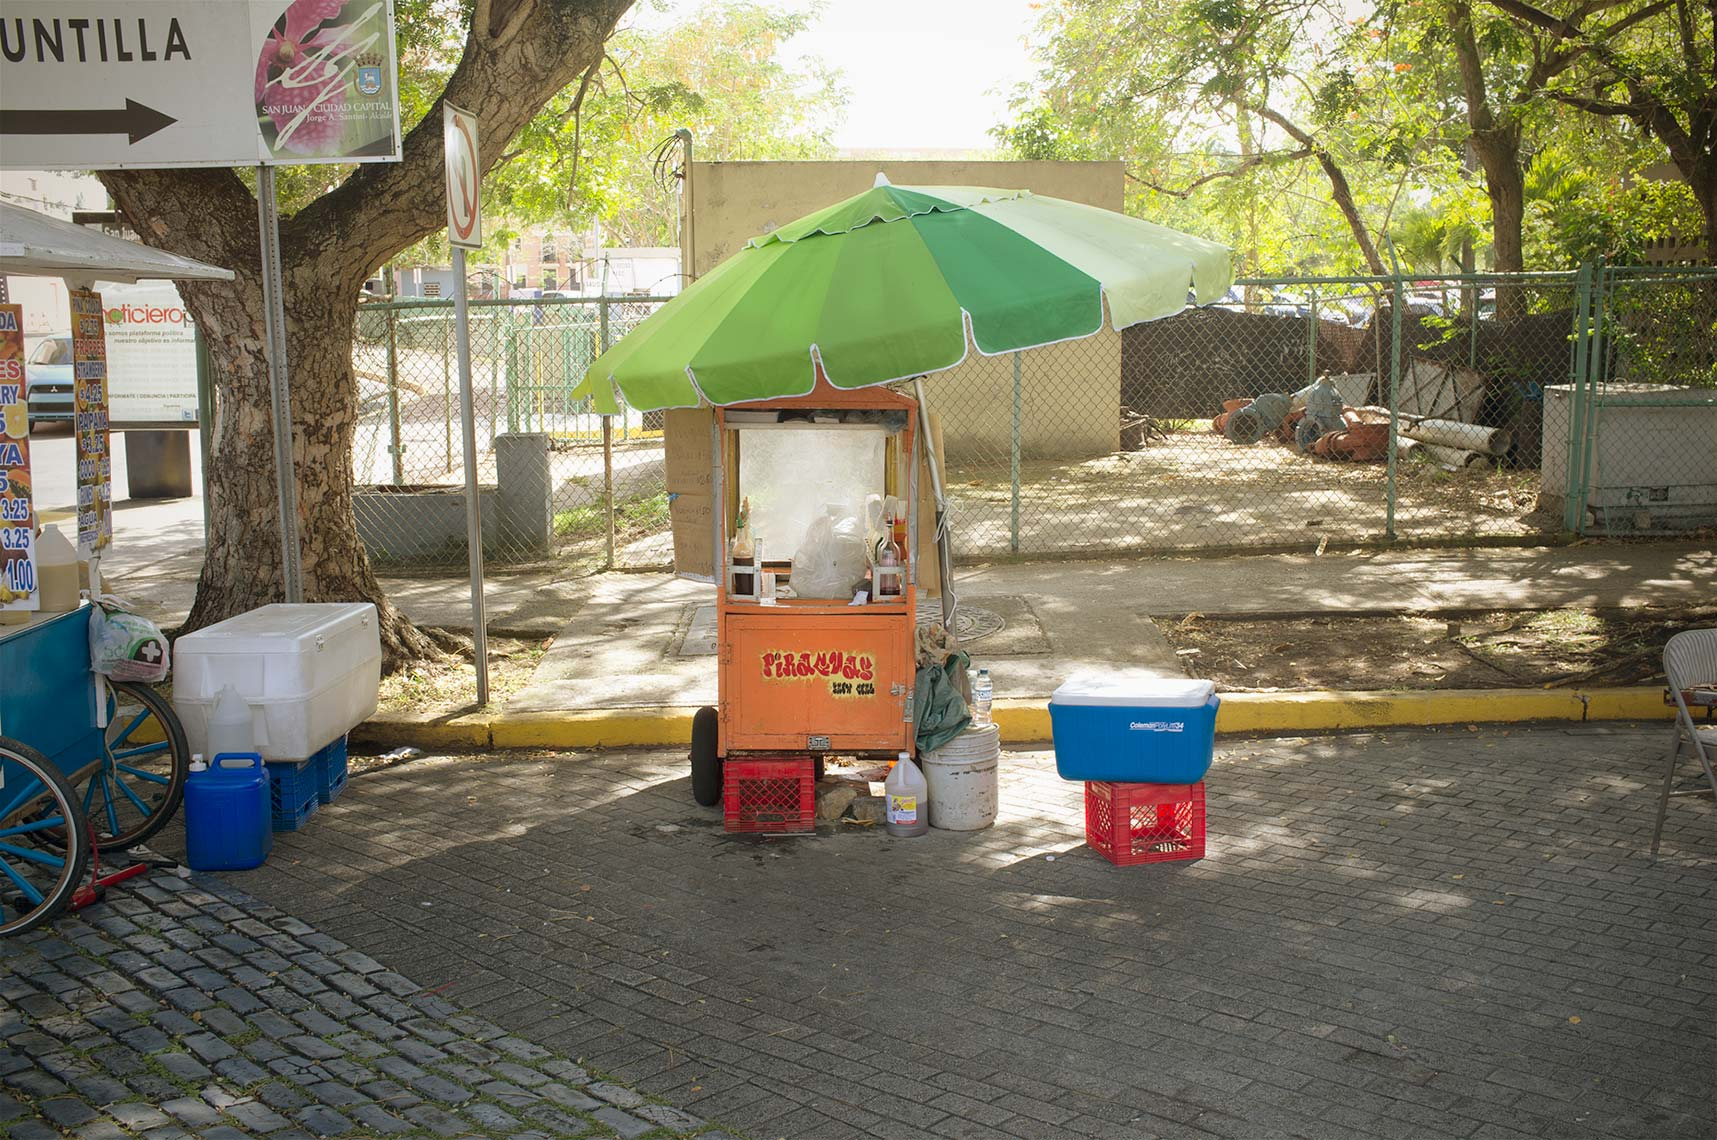 Puerto Rico Food Cart